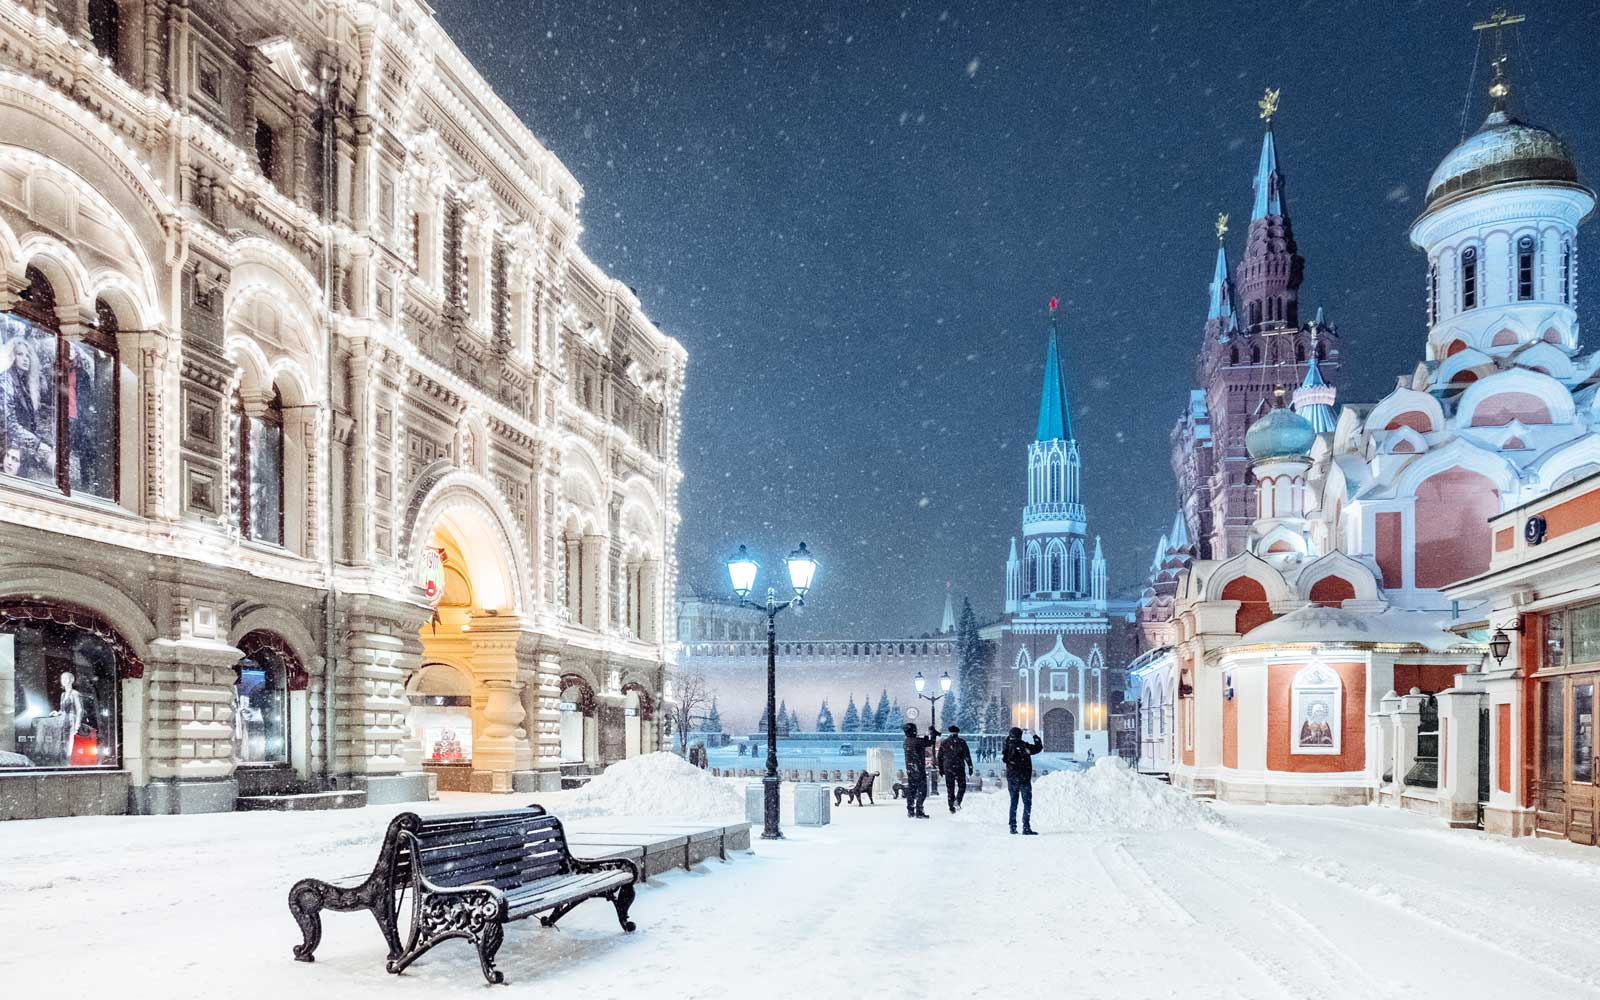 Night view of the Red Square in Moscow, Russia during a snowstorm